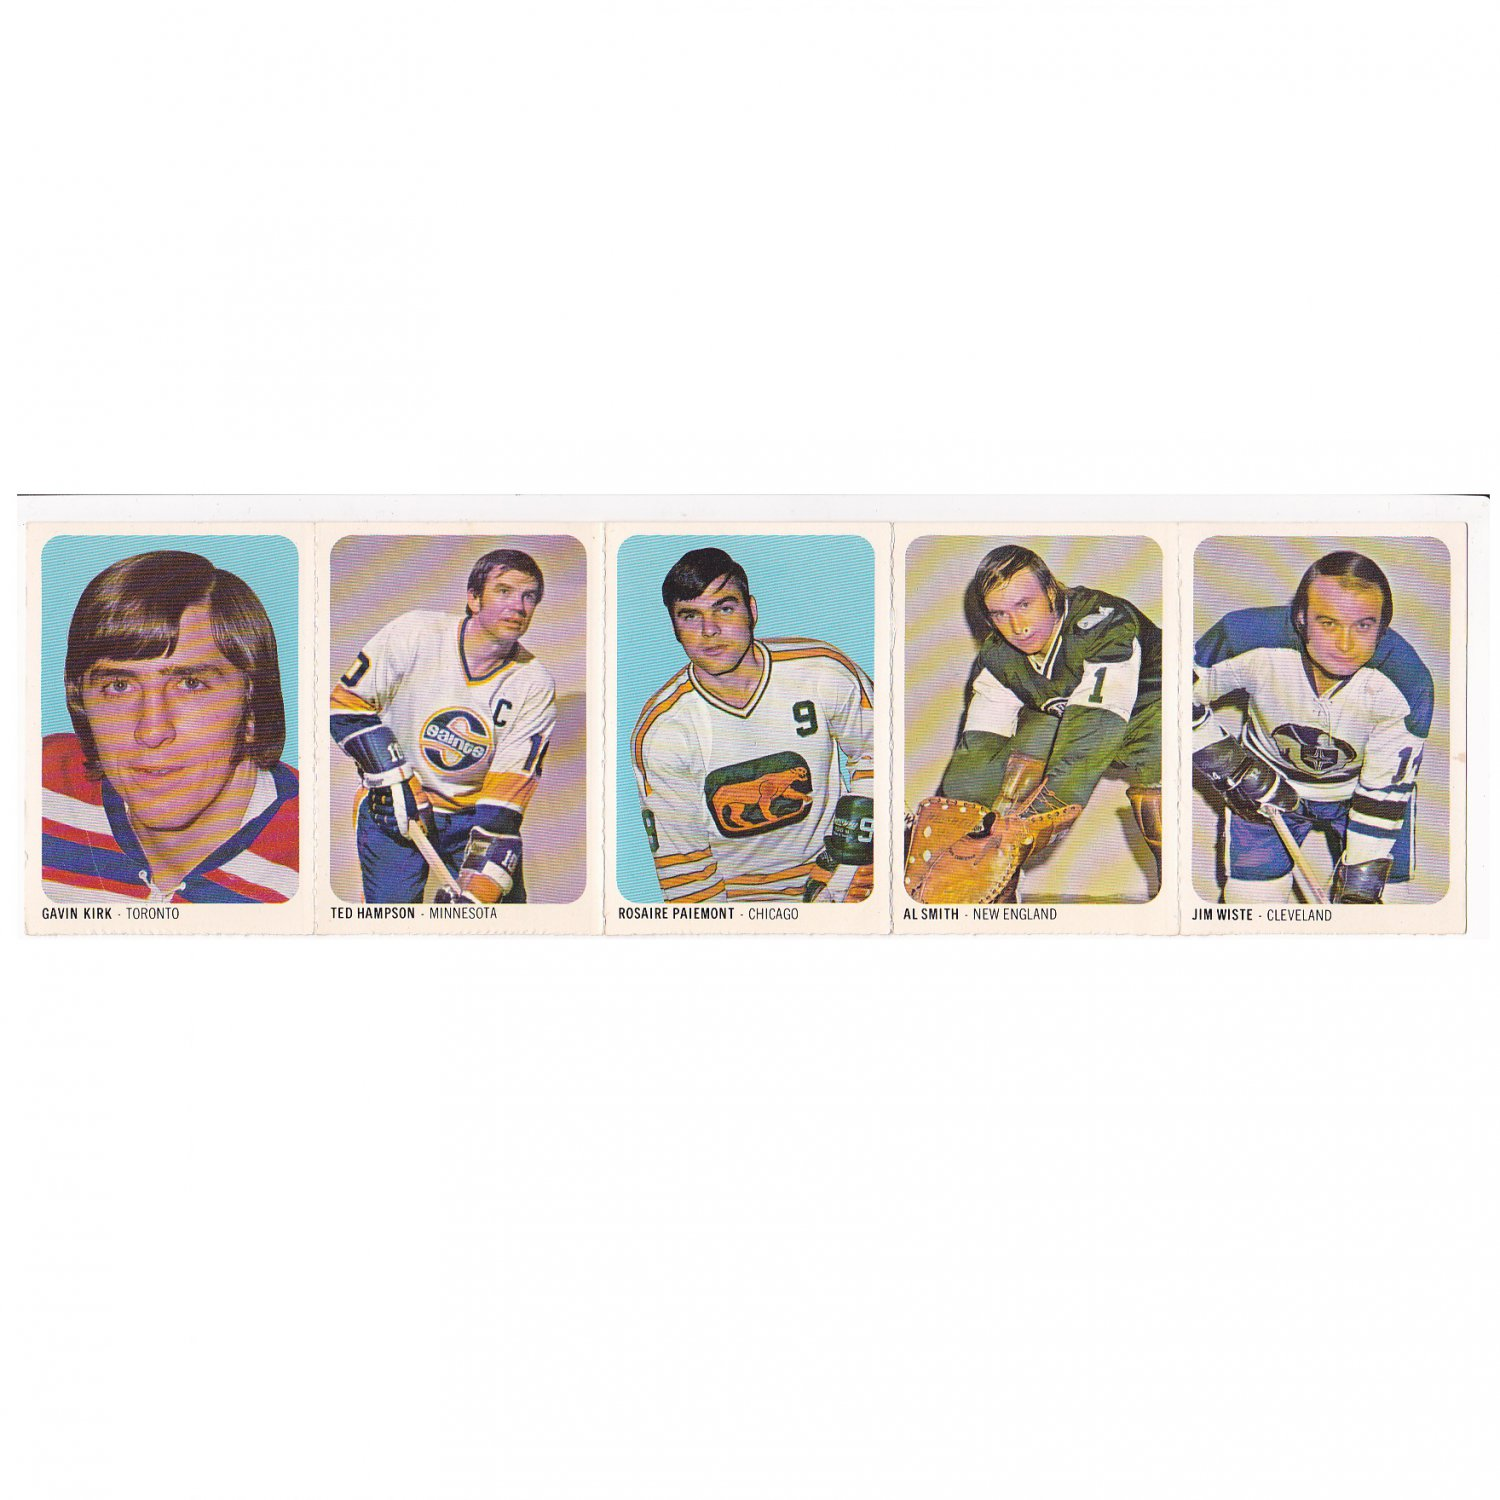 QUAKER OATS WHA 1973-74 UNCUT SHEET OF 5 HOCKEY CARDS 1 - 5